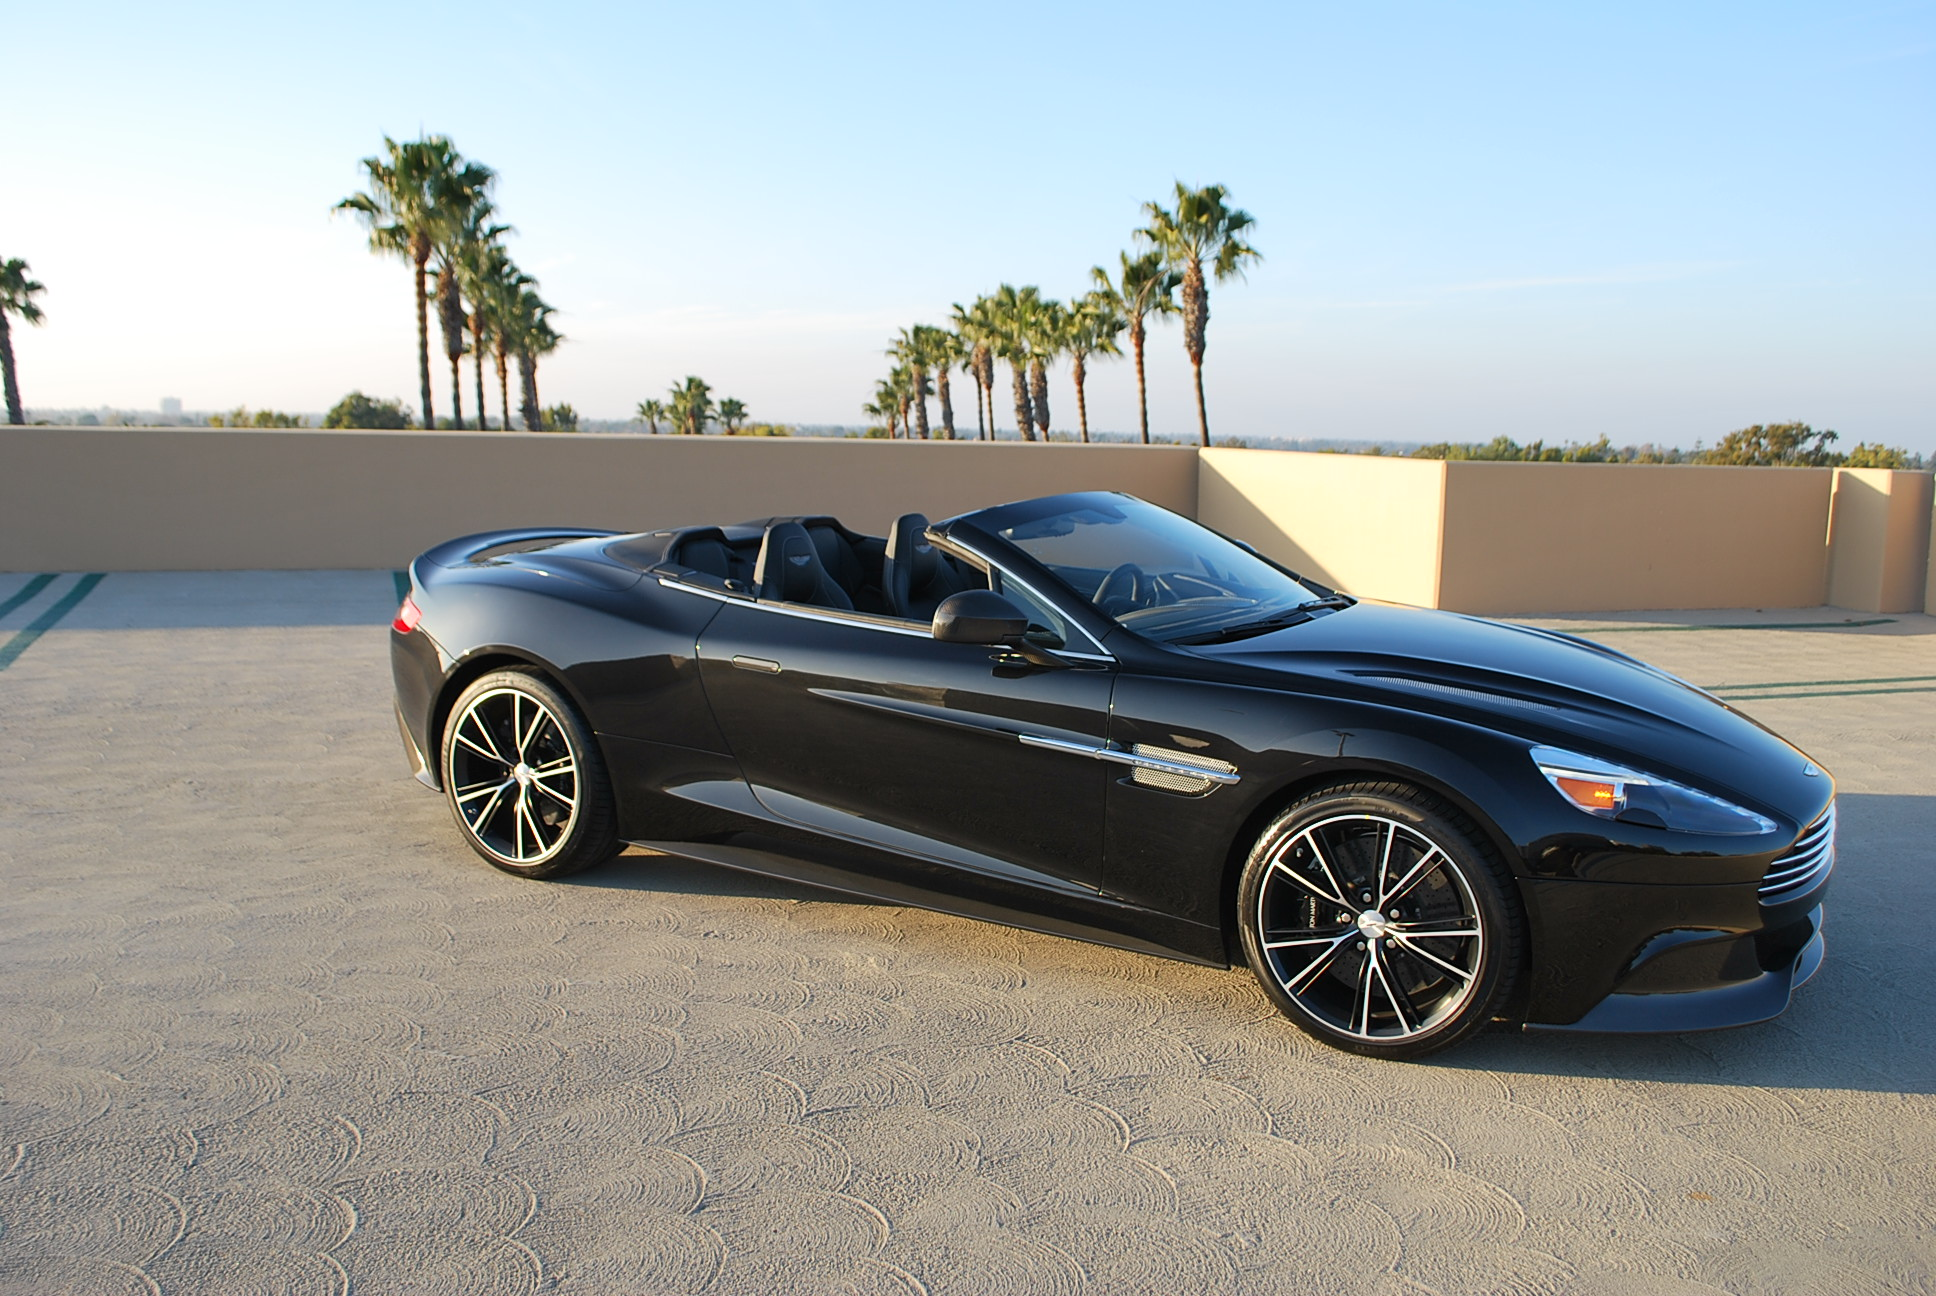 Aston Martin Db9 Black Convertible 1